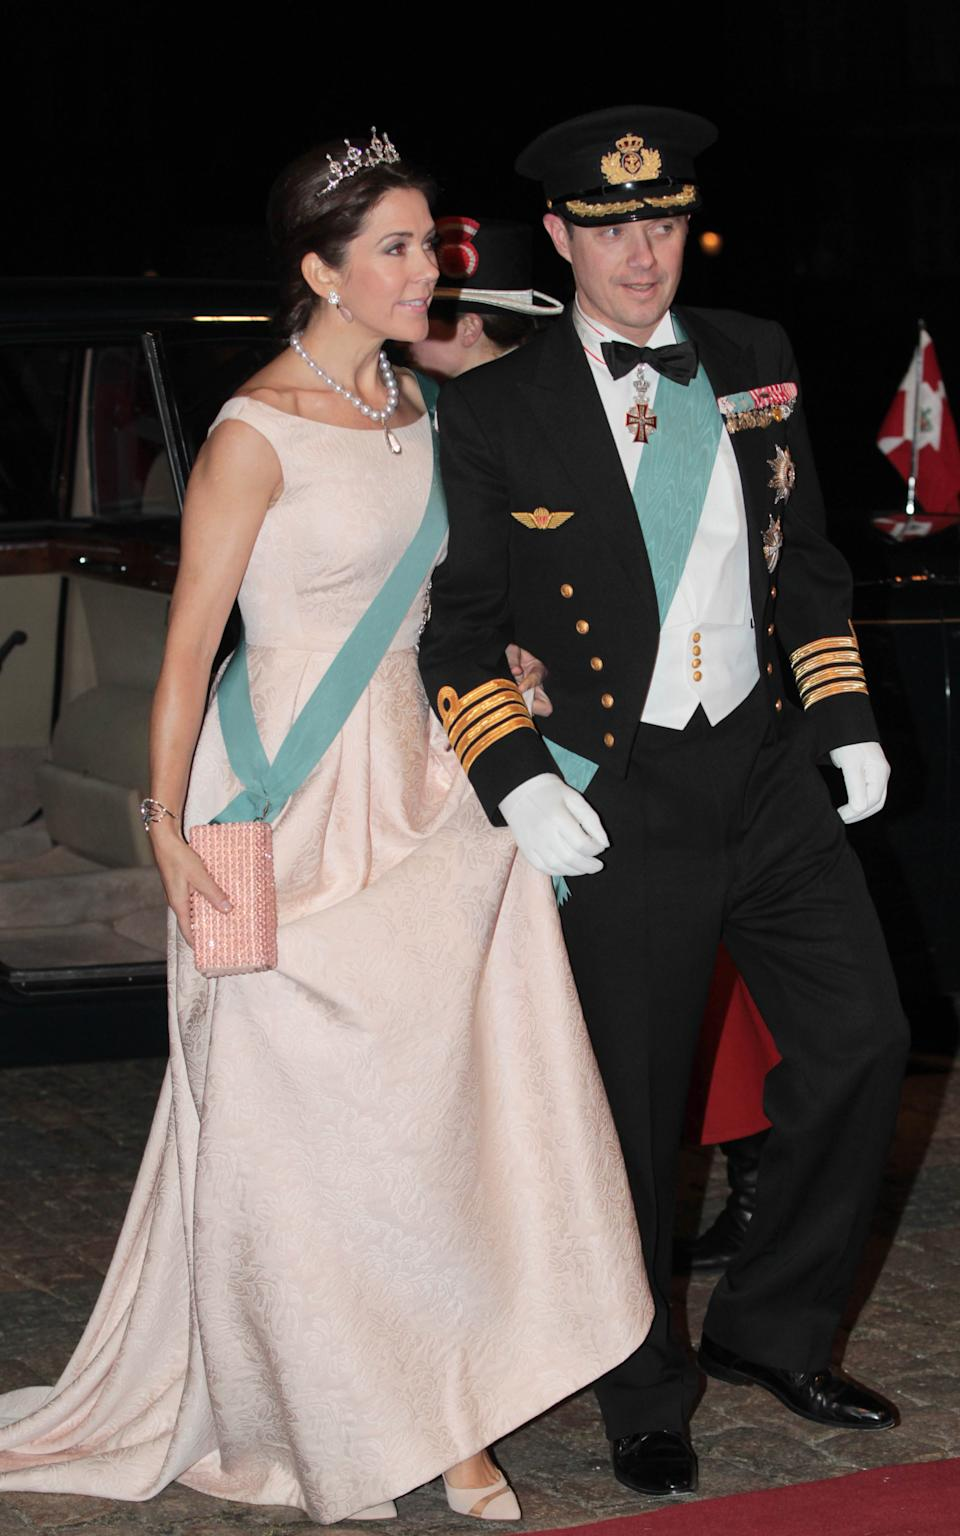 Frederik (R), Crown Prince of Denmark and his wife Crown Princess Mary (L) arrive at Amalienborg Palace for a dinner in honor of Turkish President Abdullah Gul and his wife Hayrunnisa Gul given by Queen Margrethe II and her husband Prince Henrik in Copenhagen, Denmark on March 17, 2014. (Photo by Mehmet Kaman/Anadolu Agency/Getty Images)